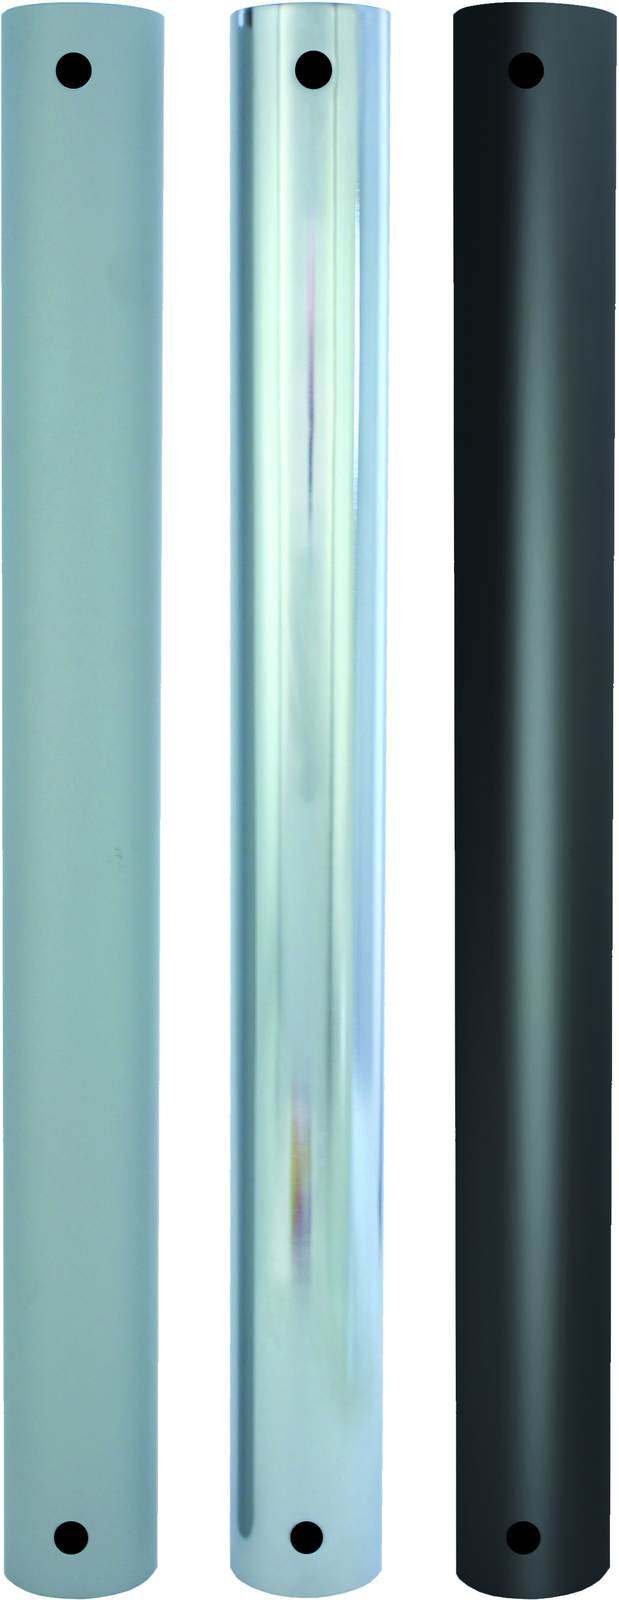 B-Tech 50mm Diameter Poles